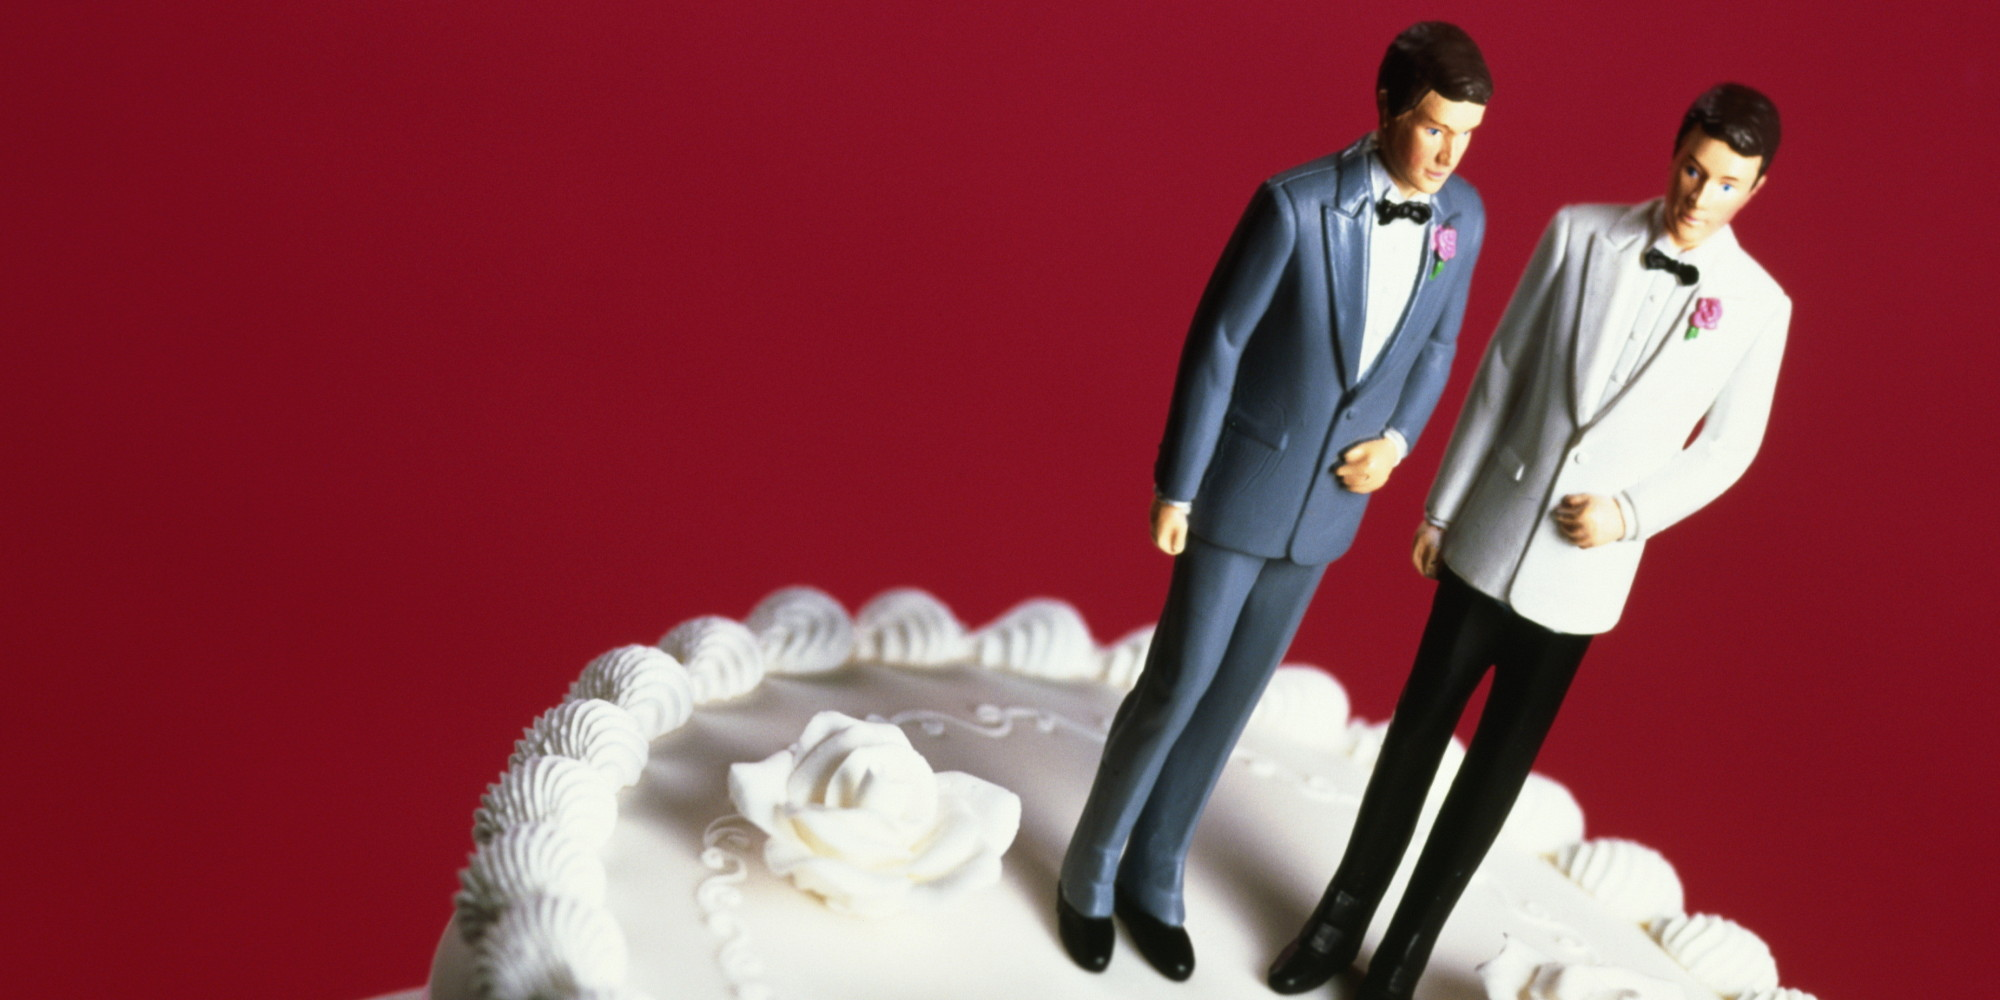 wedding cakes for gay couples frank schaefer pennsylvania pastor who officiated 24373